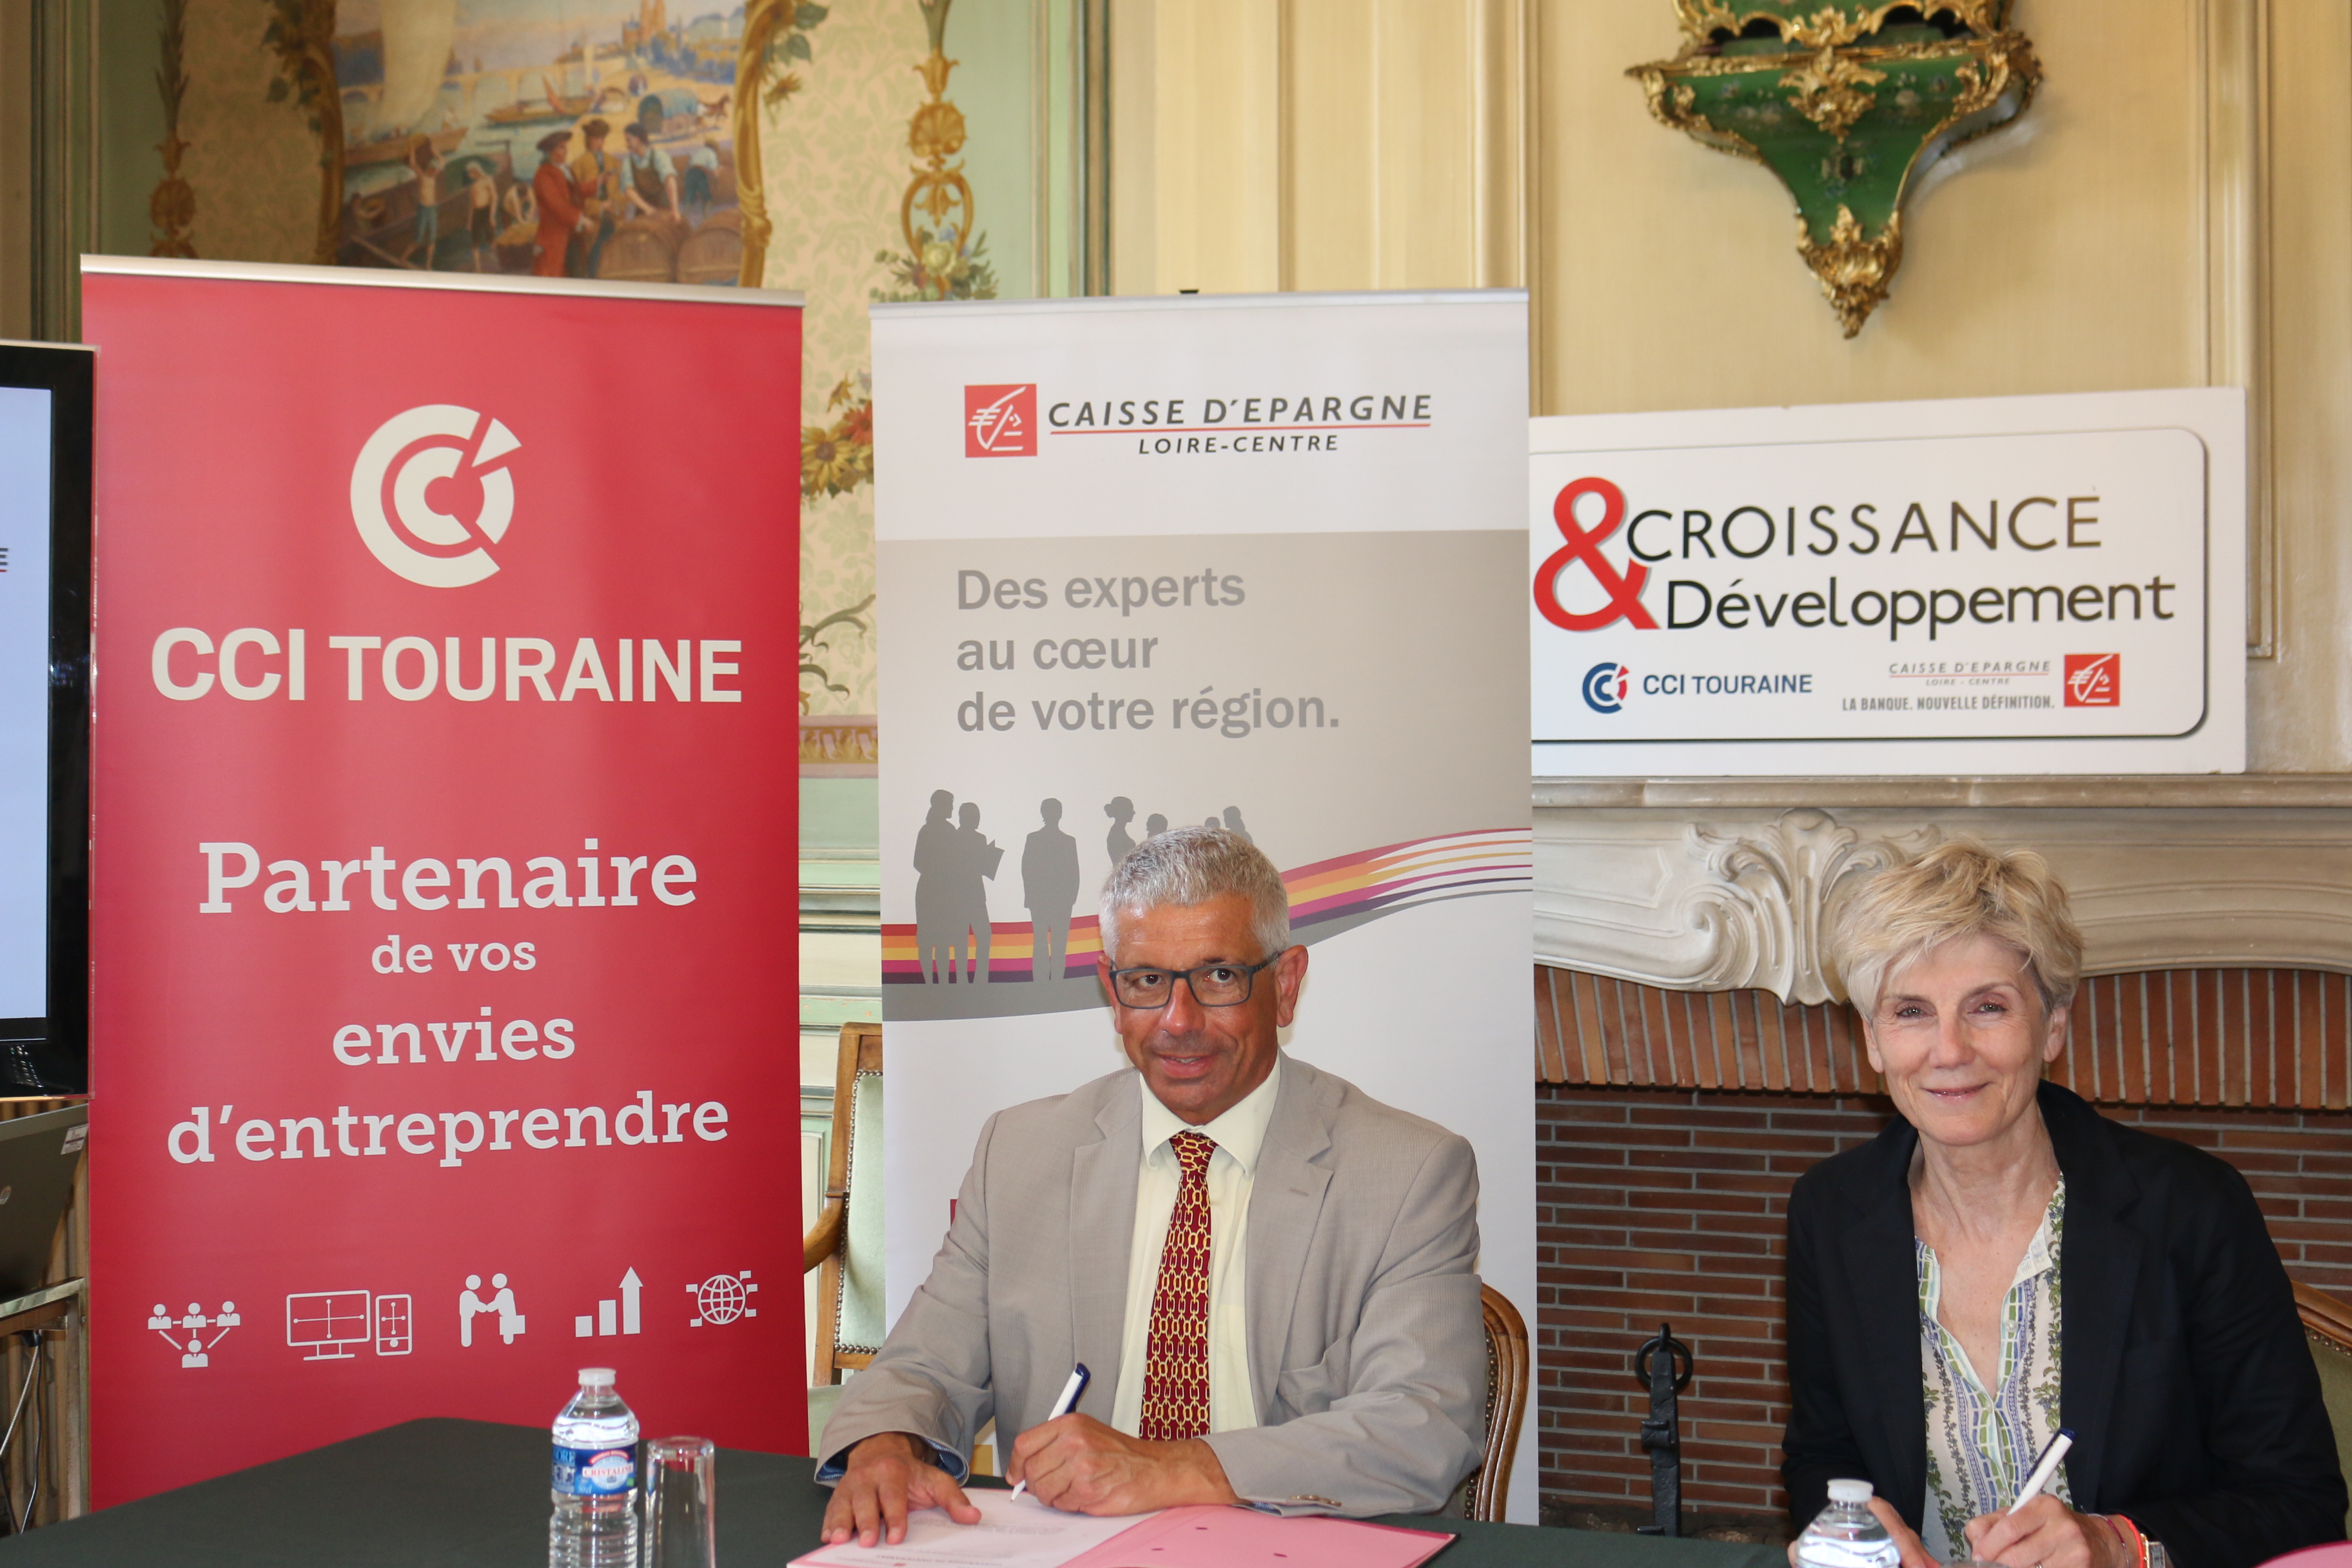 convention-cci-touraine-37-caisse-epargne-loire-centre